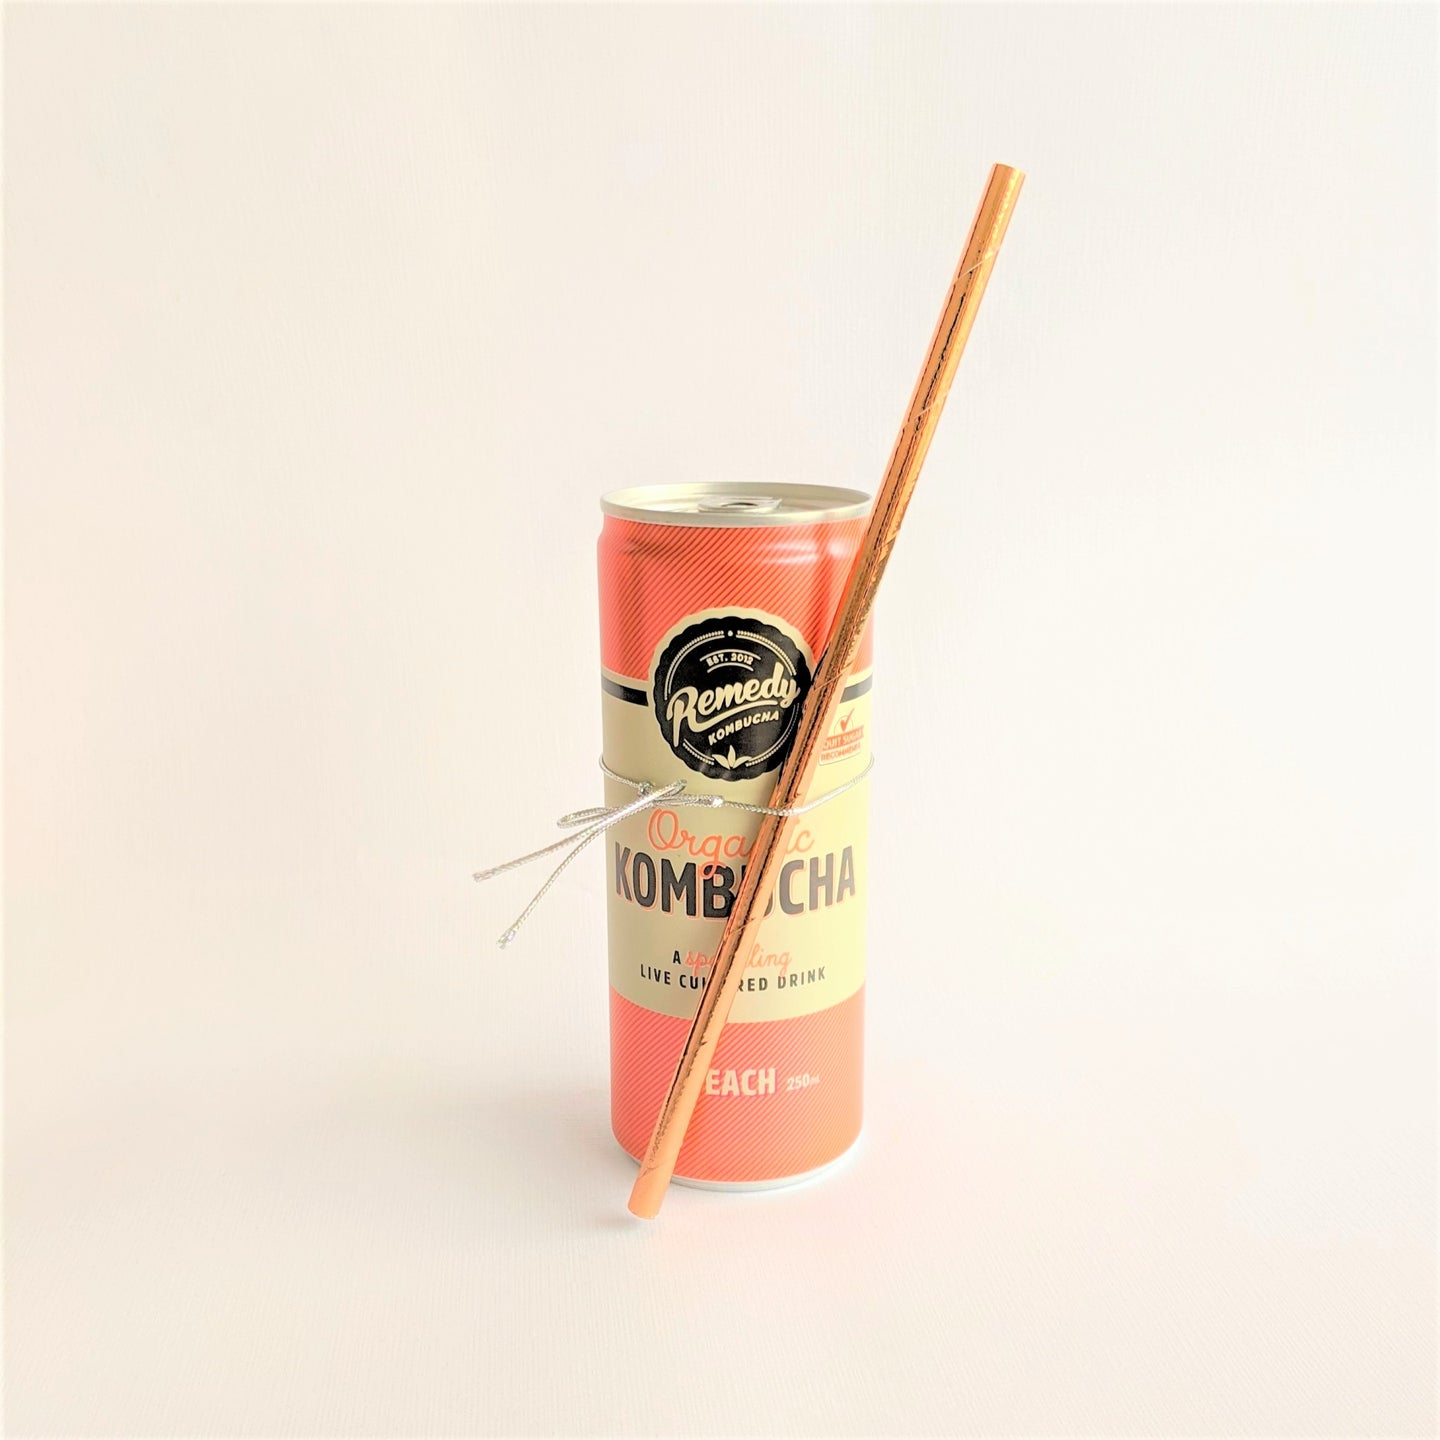 Organic Kombucha can with straw, Peach flavour